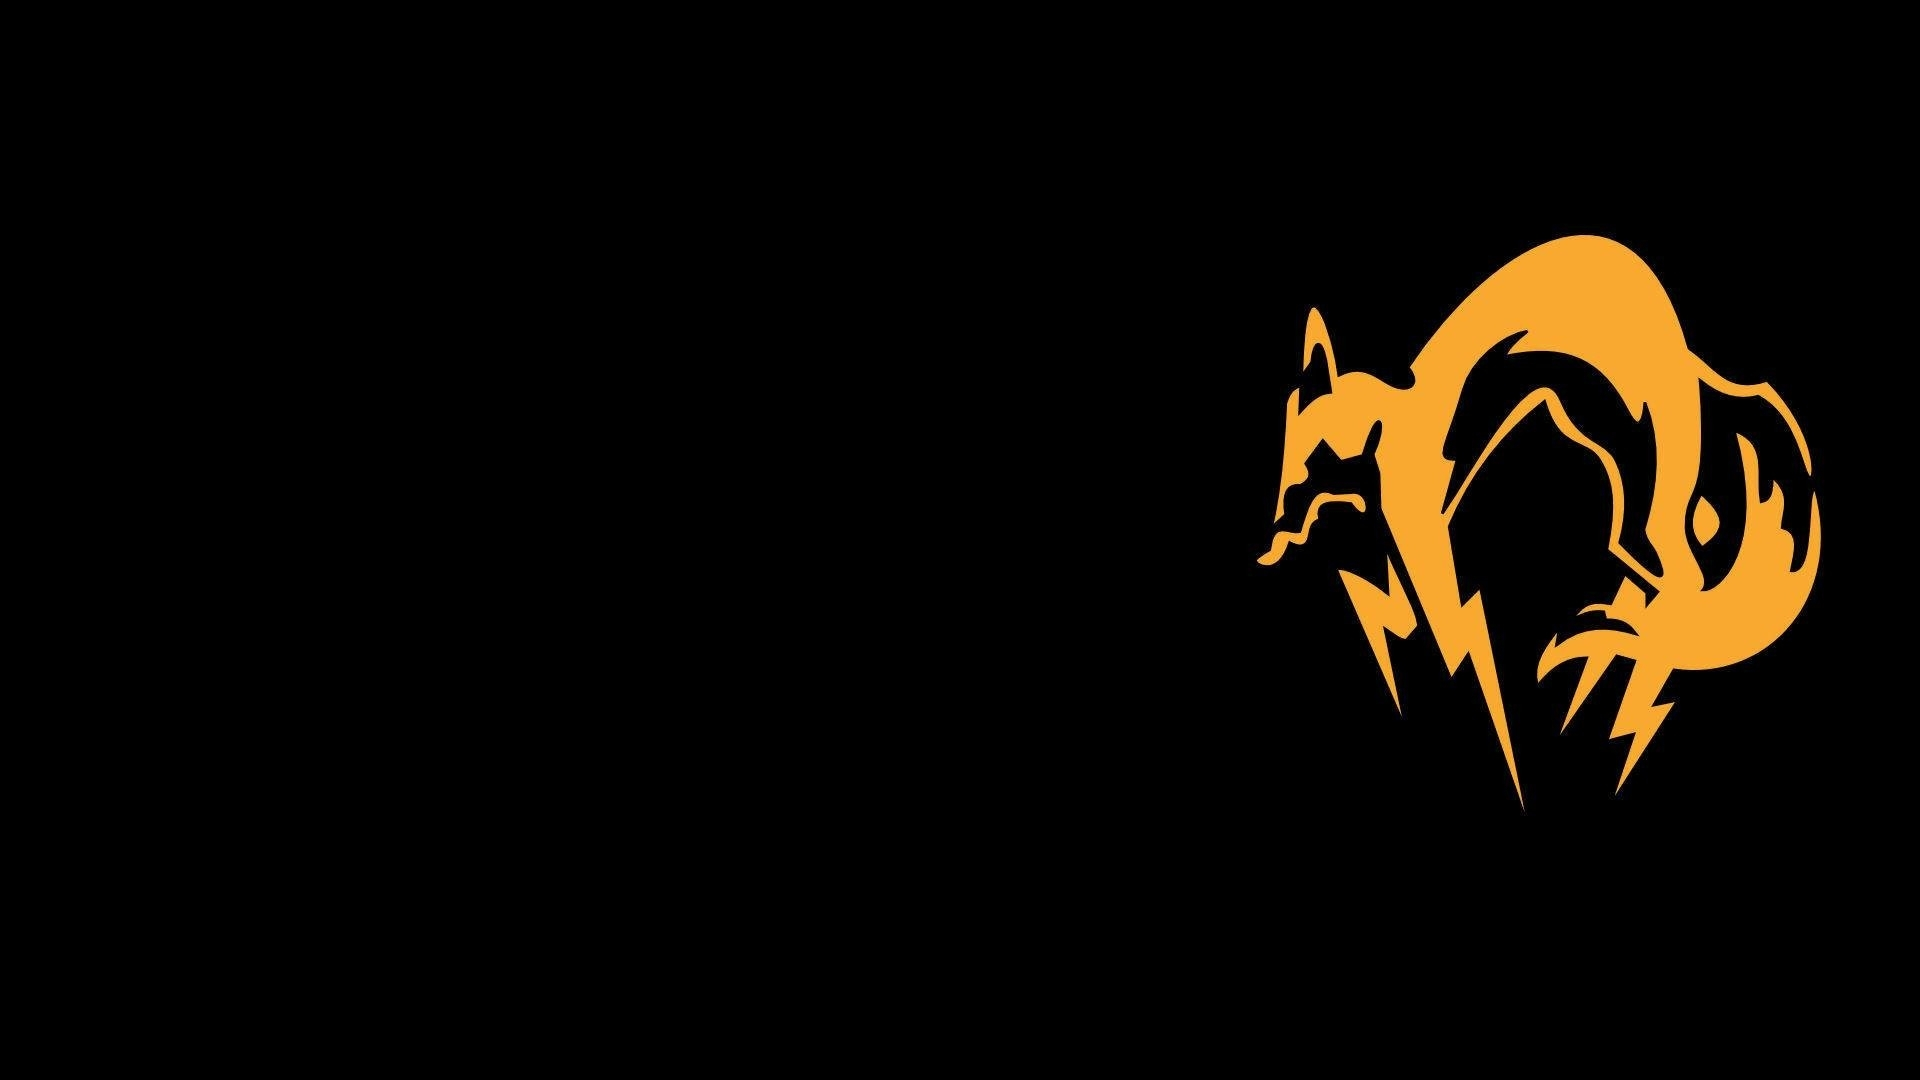 fox hound wallpaper (58+ images)